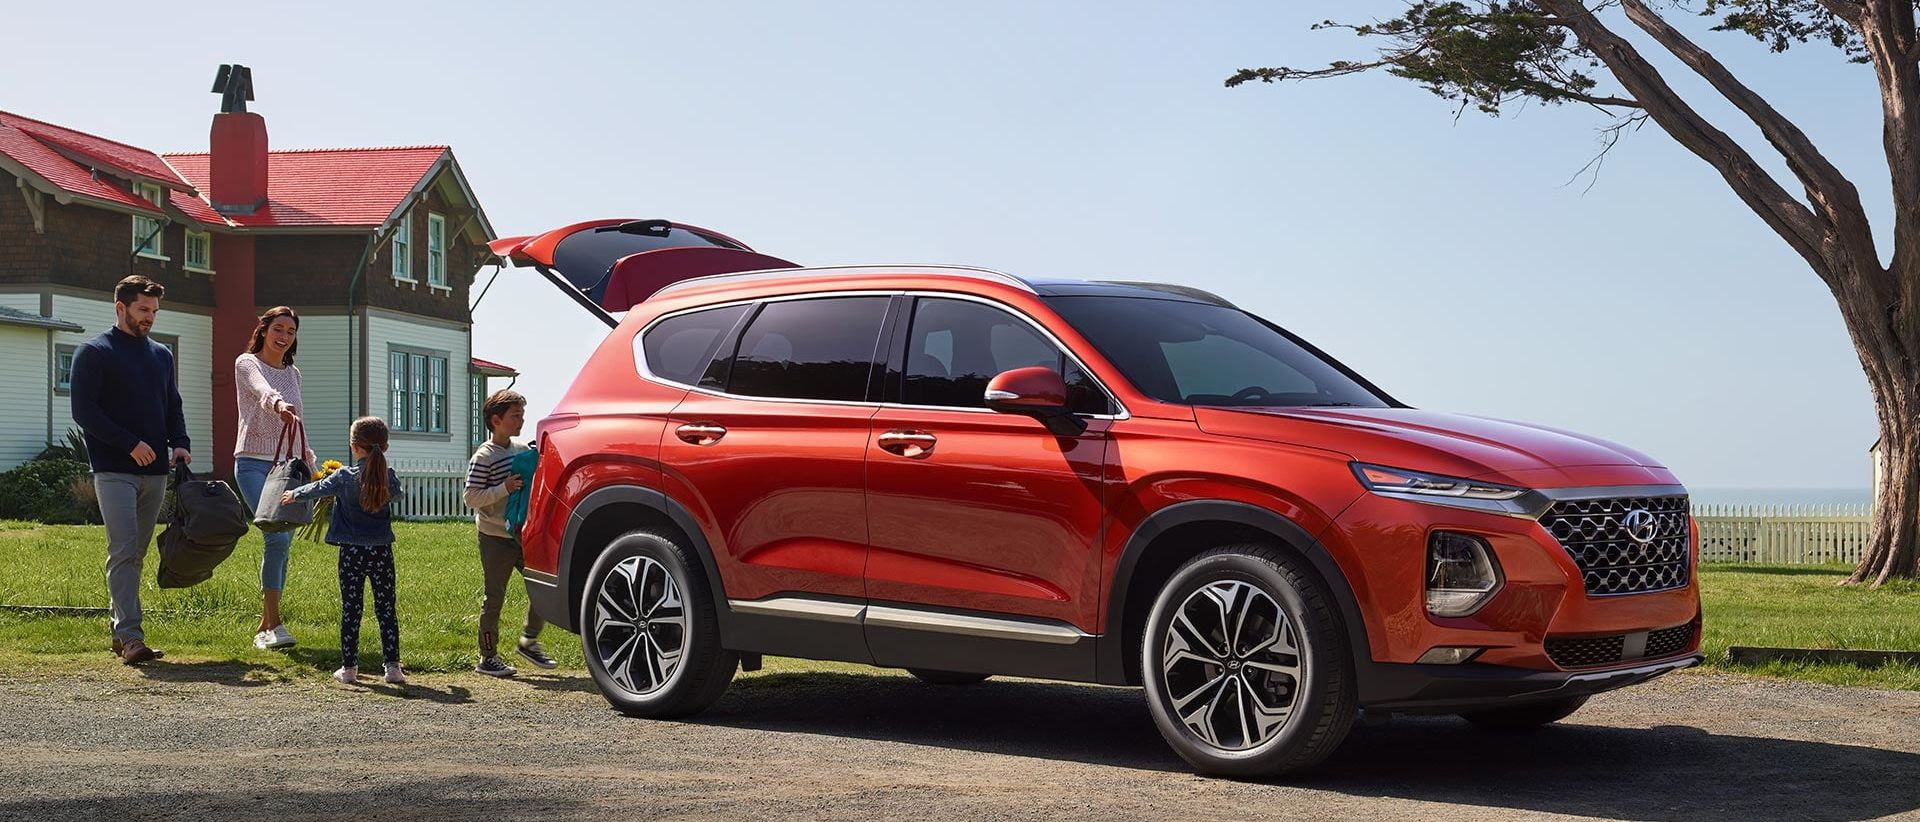 2019 Hyundai Santa Fe Leasing near Richmond, VA